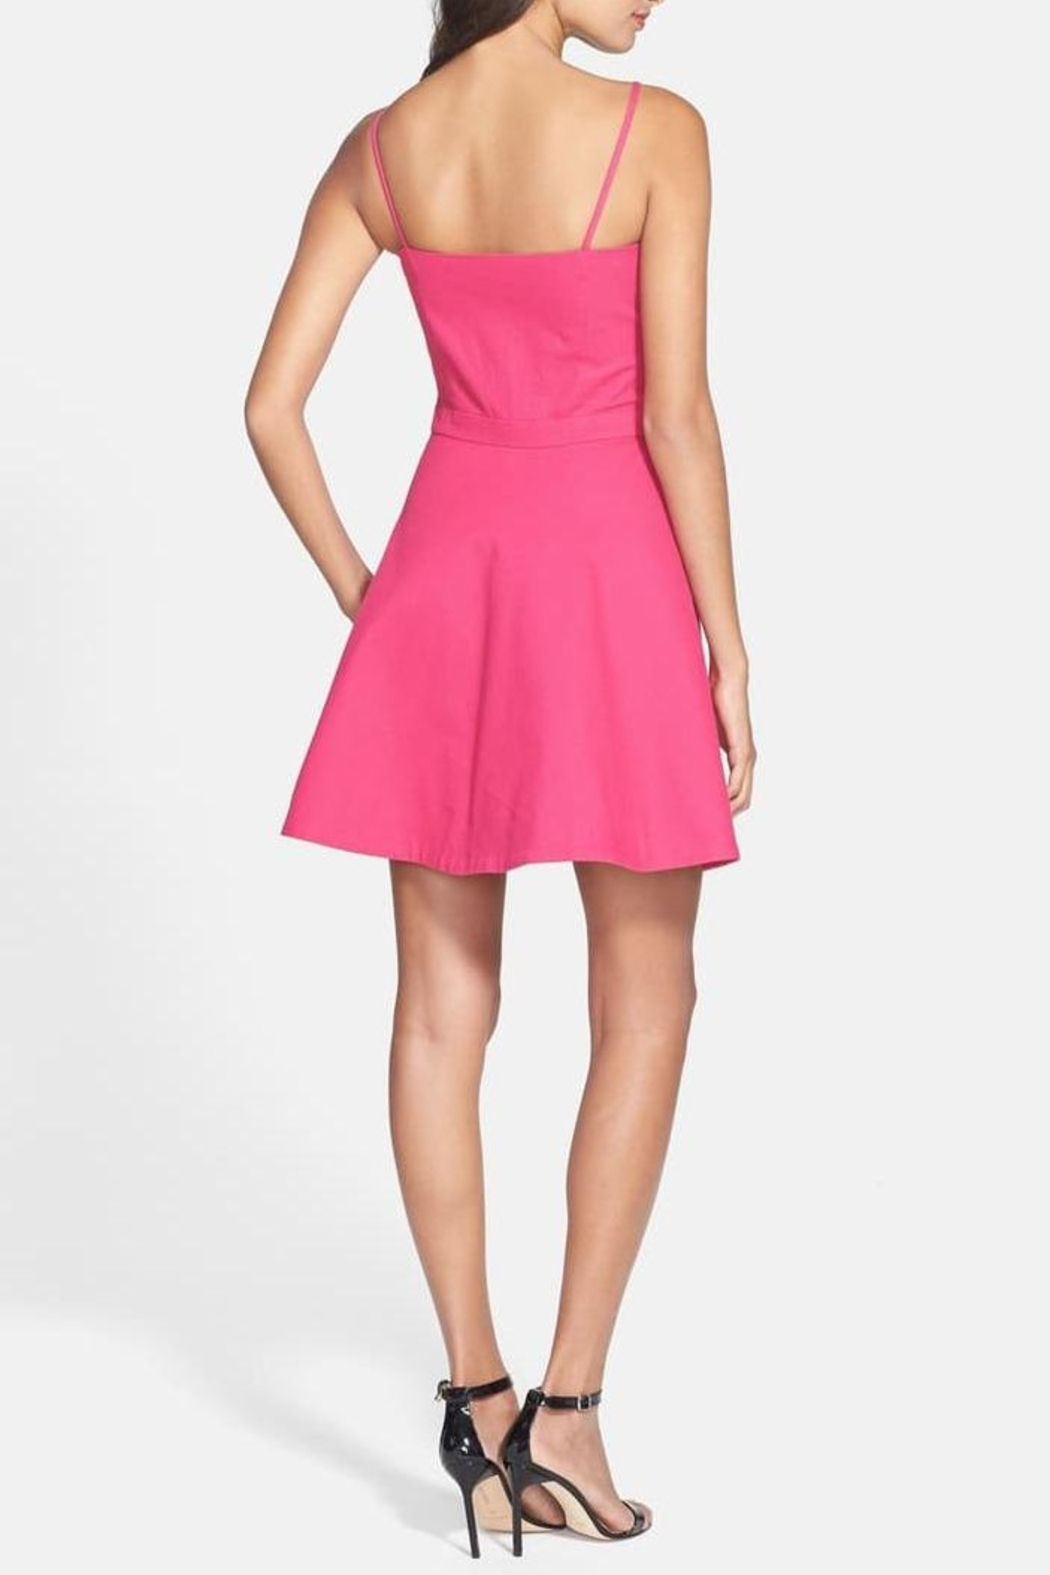 Joie Viernan Dress - Front Full Image